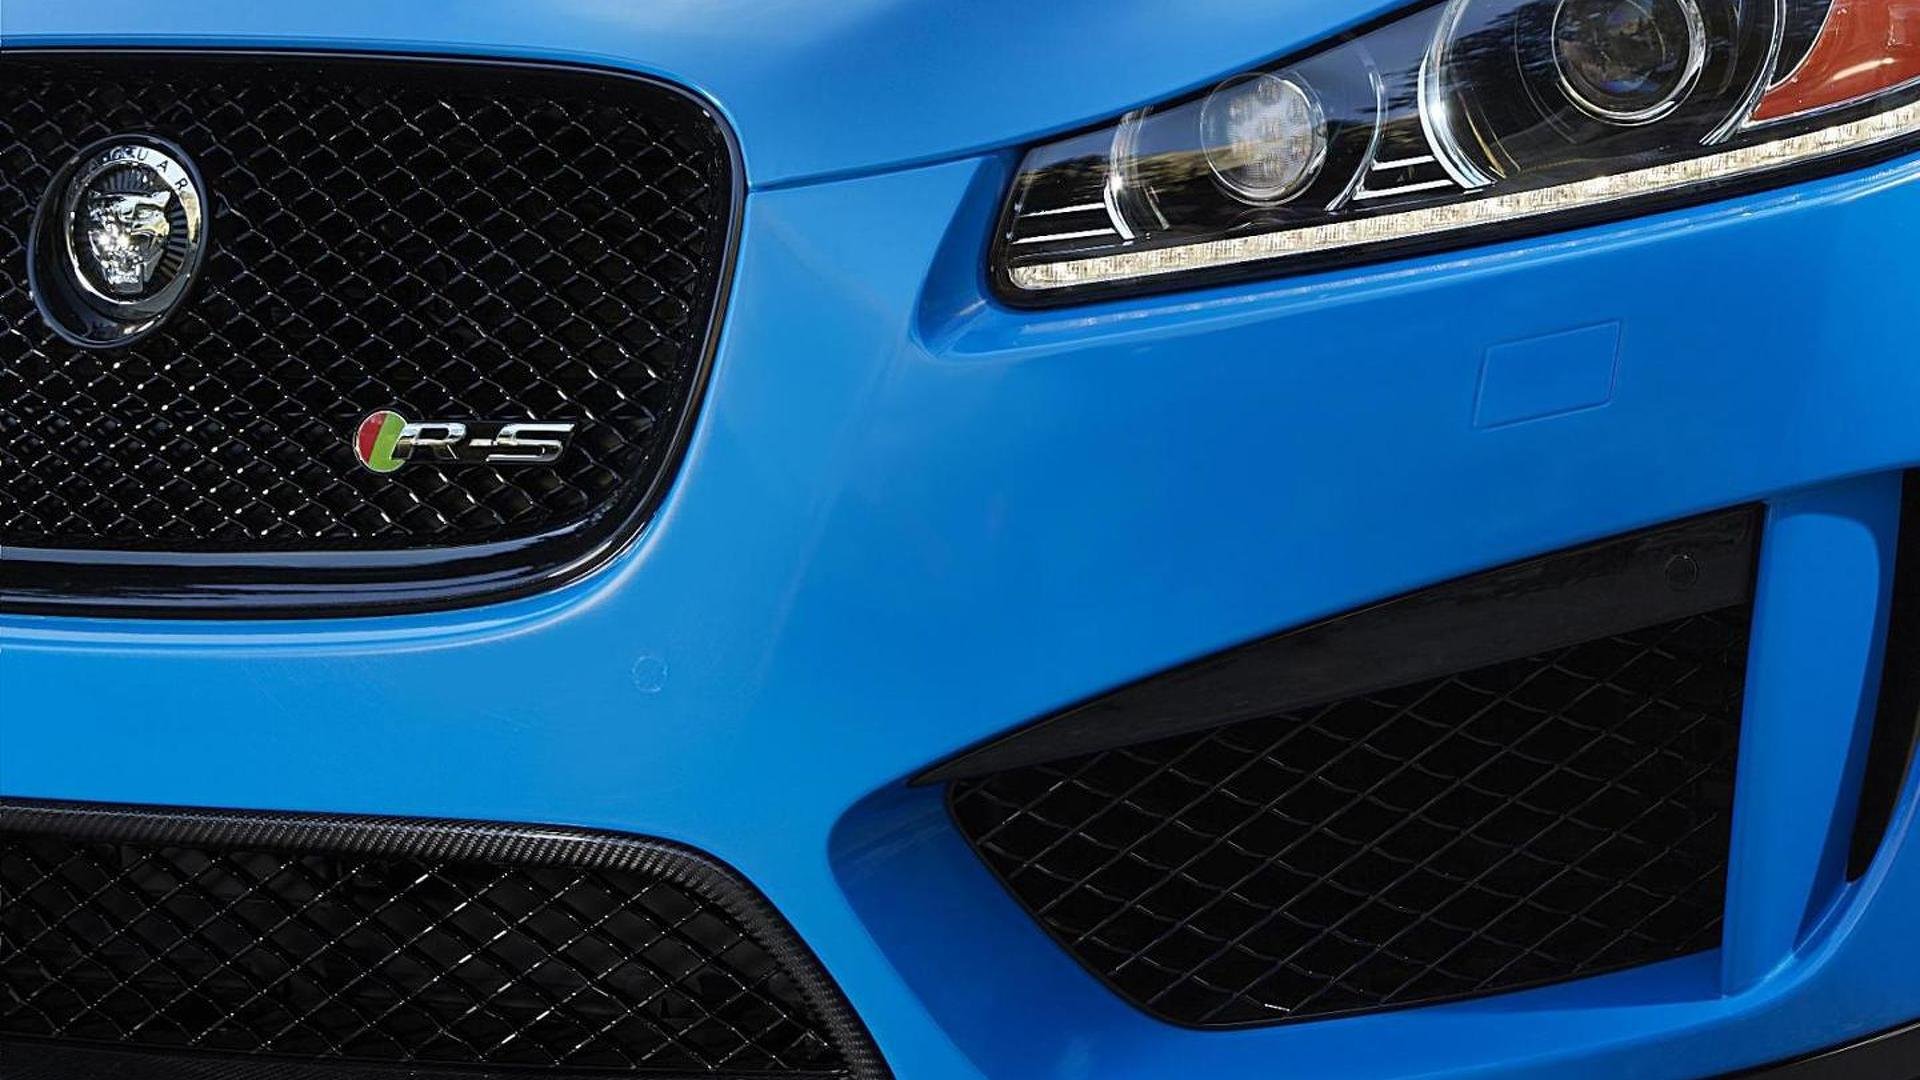 2014 Jaguar XFR-S promo video released